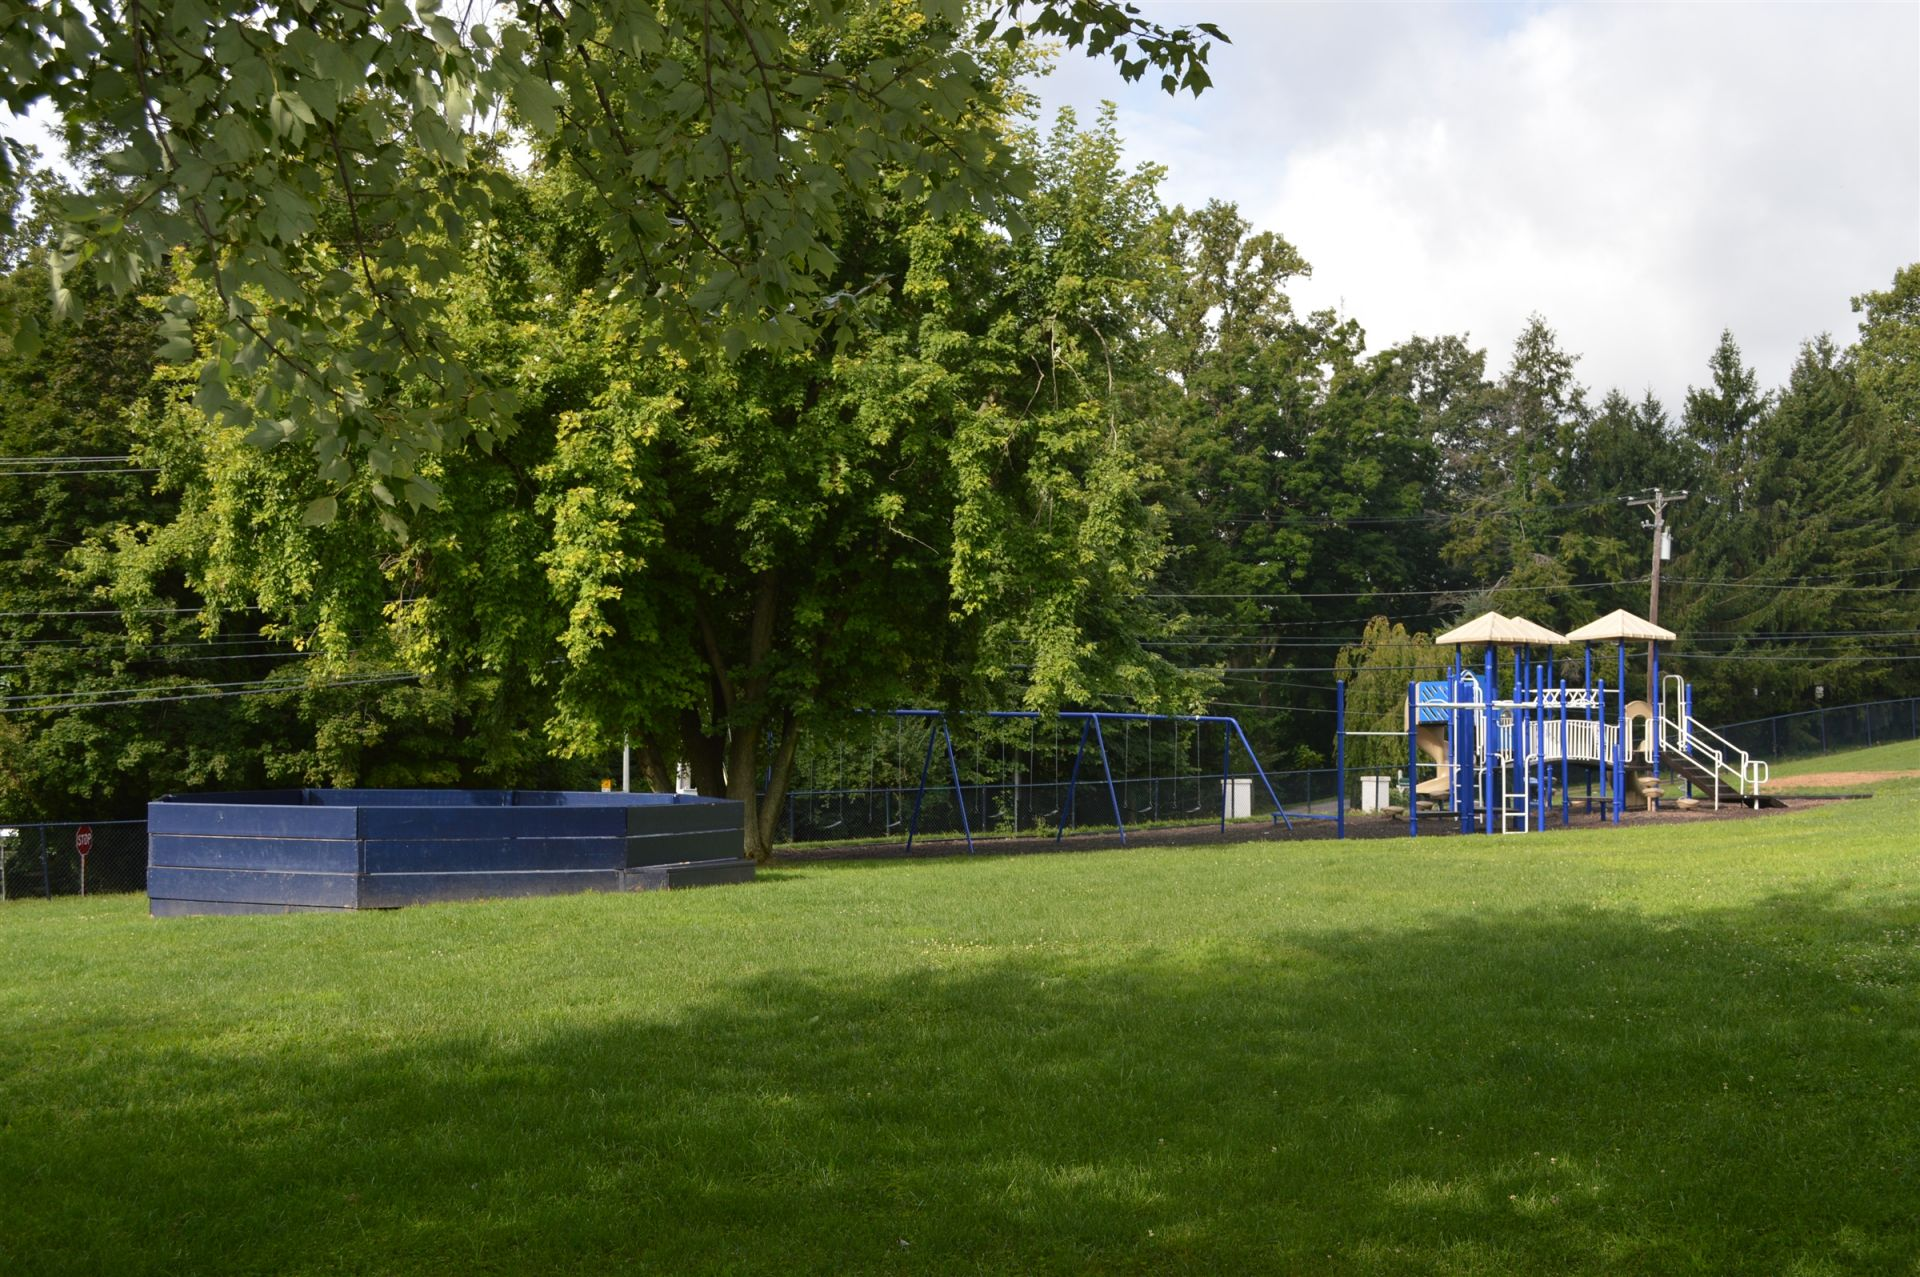 The Playground is where Lower School students enjoy recess.